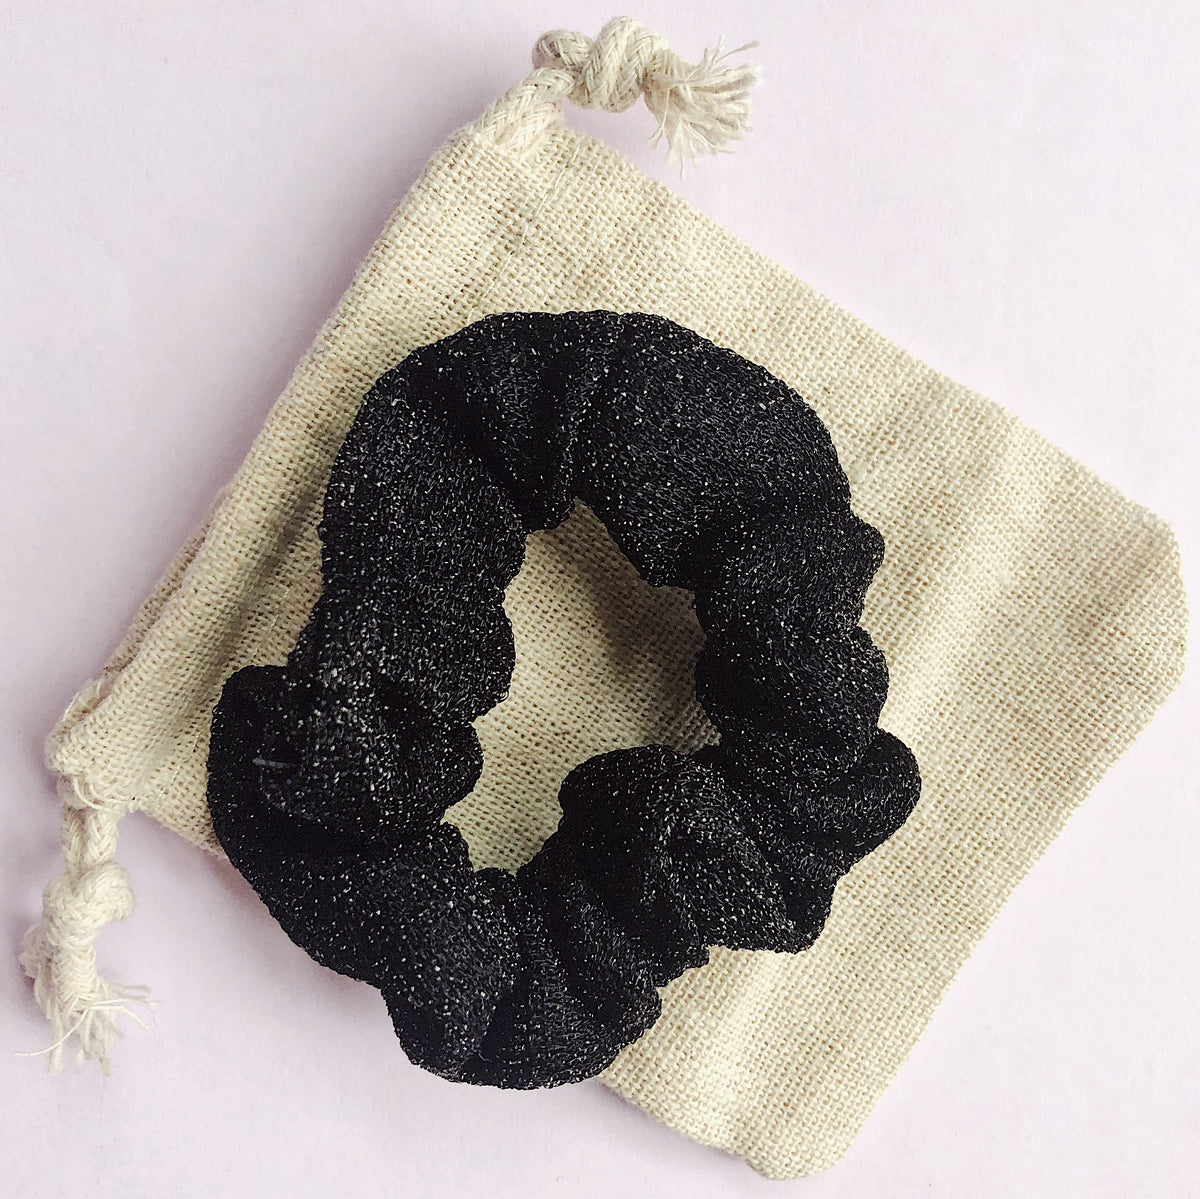 'BLACK' - Smaller Sparkle Scrunchie